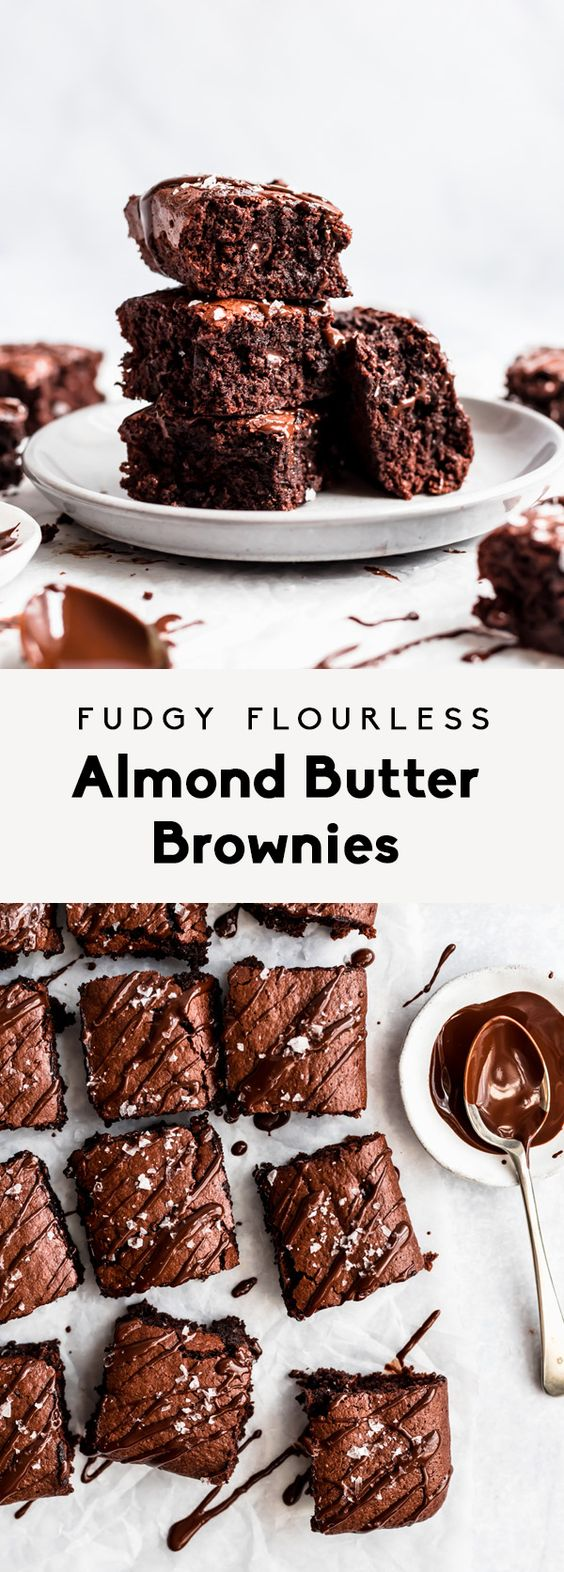 Fudgy Flourless Almond Butter Brownies (gluten free + dairy free)